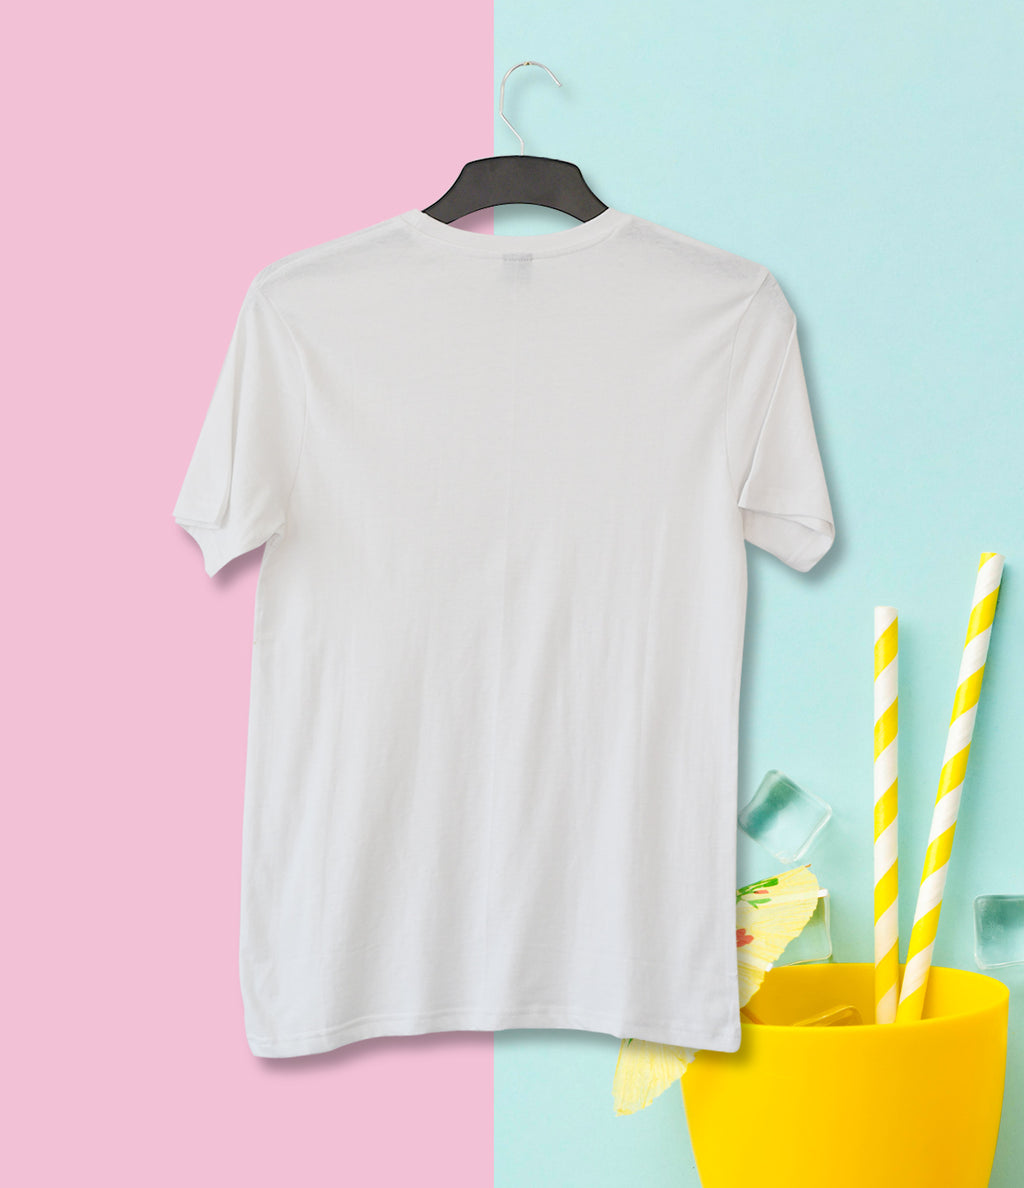 Short Sleeve Cotton T-shirt - White